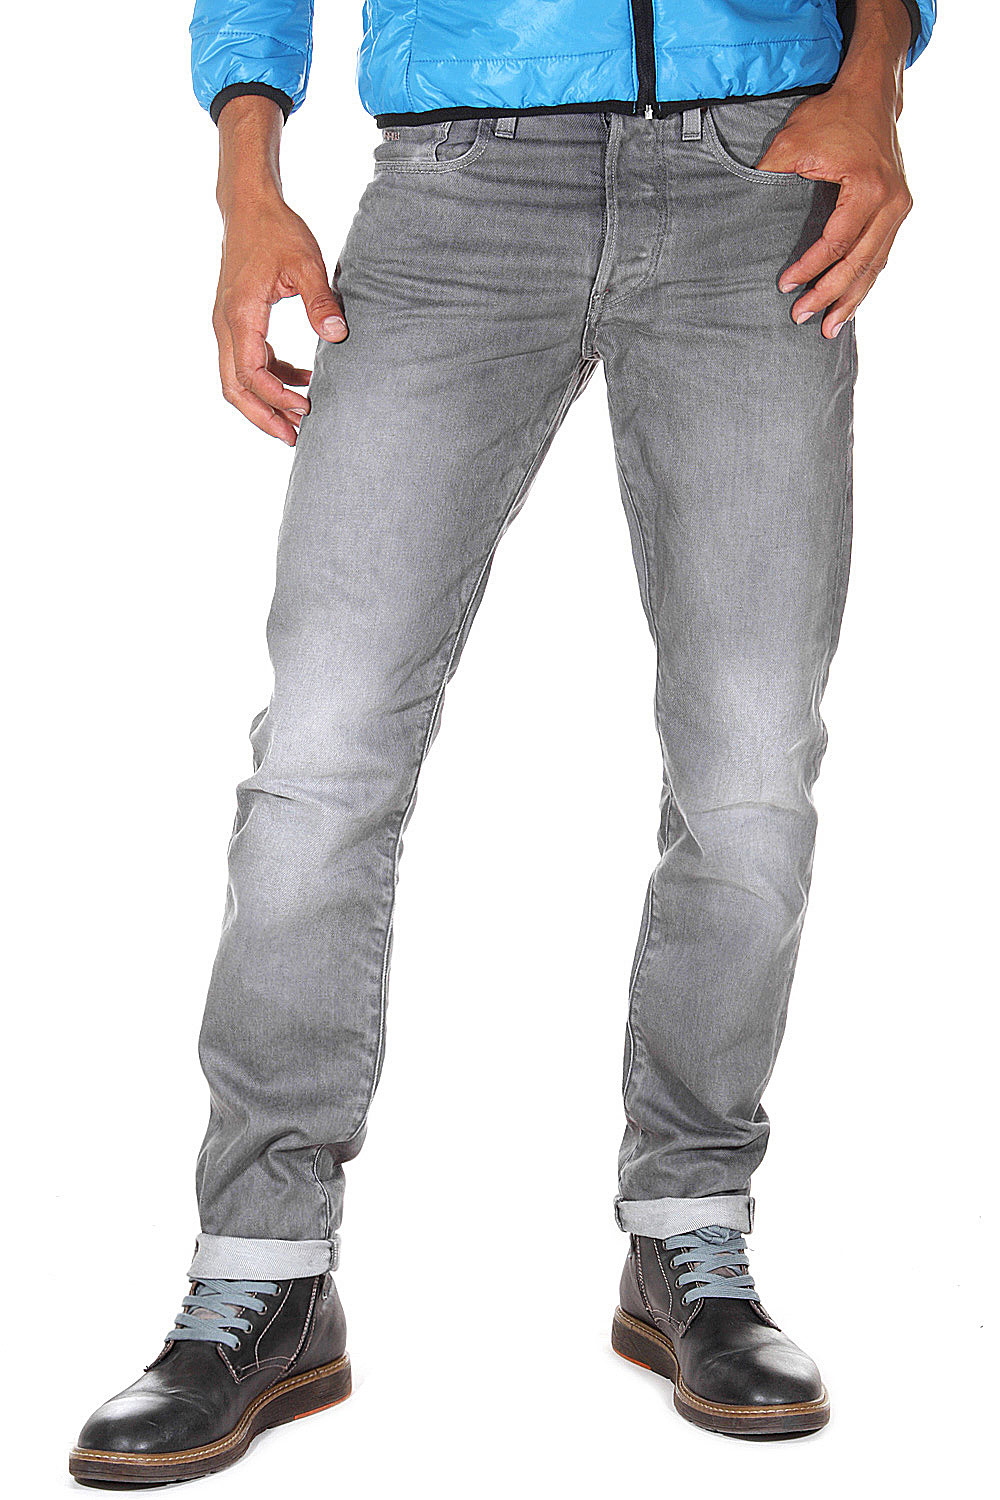 G-STAR 3301 Jeans tapered fit auf oboy.de